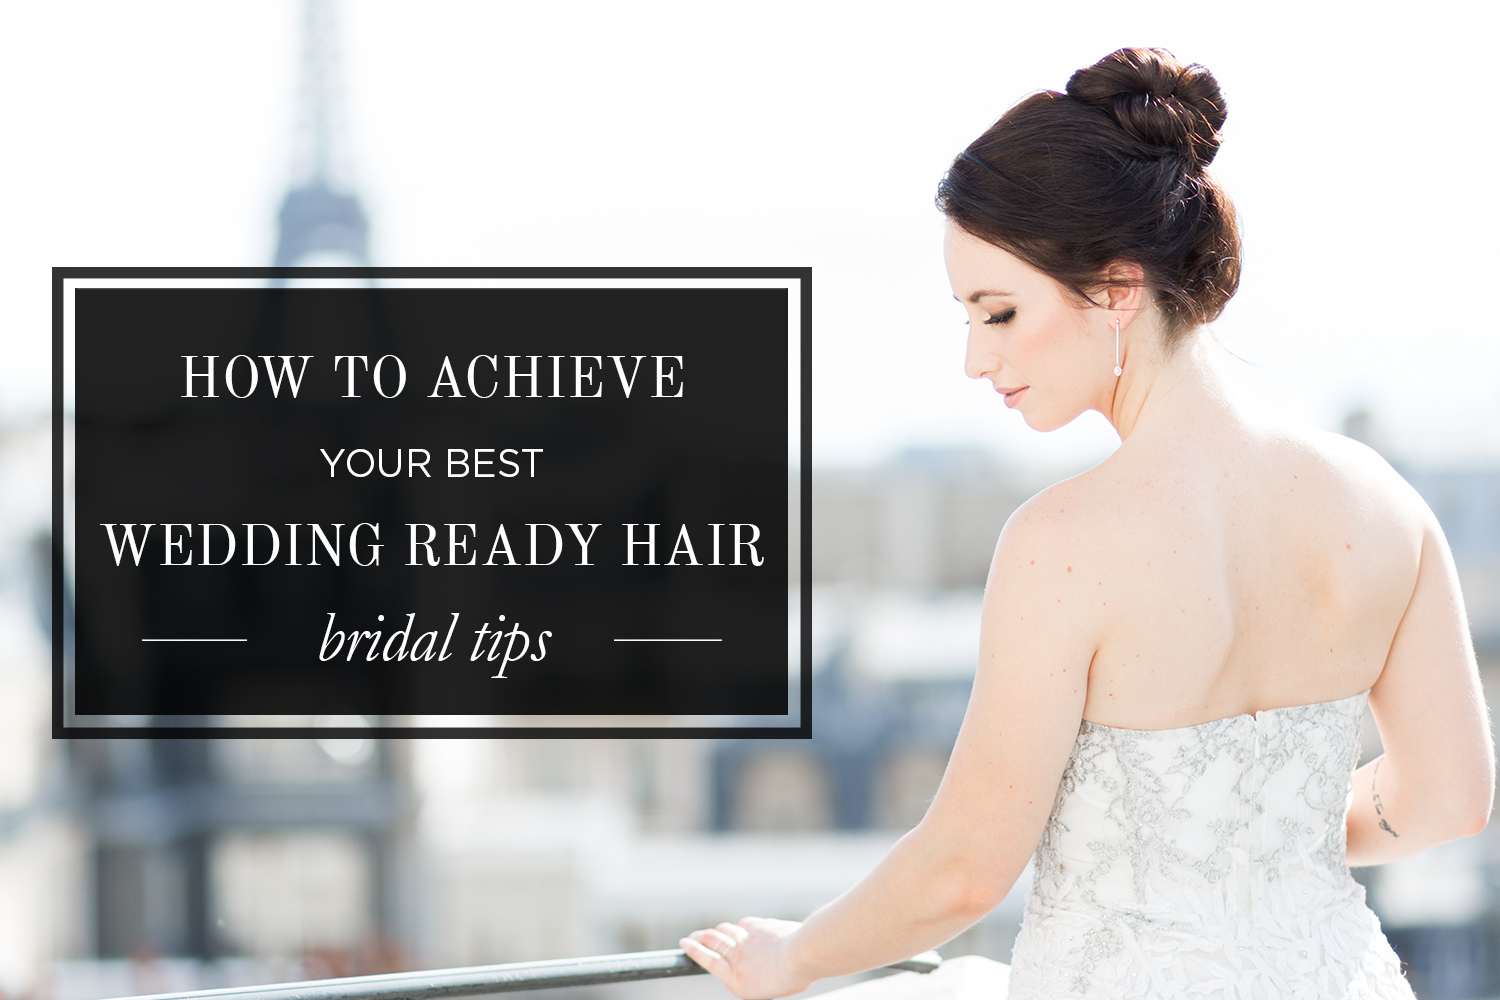 How to Achieve Wedding Ready Hair That Photographs and Styles Beautifully